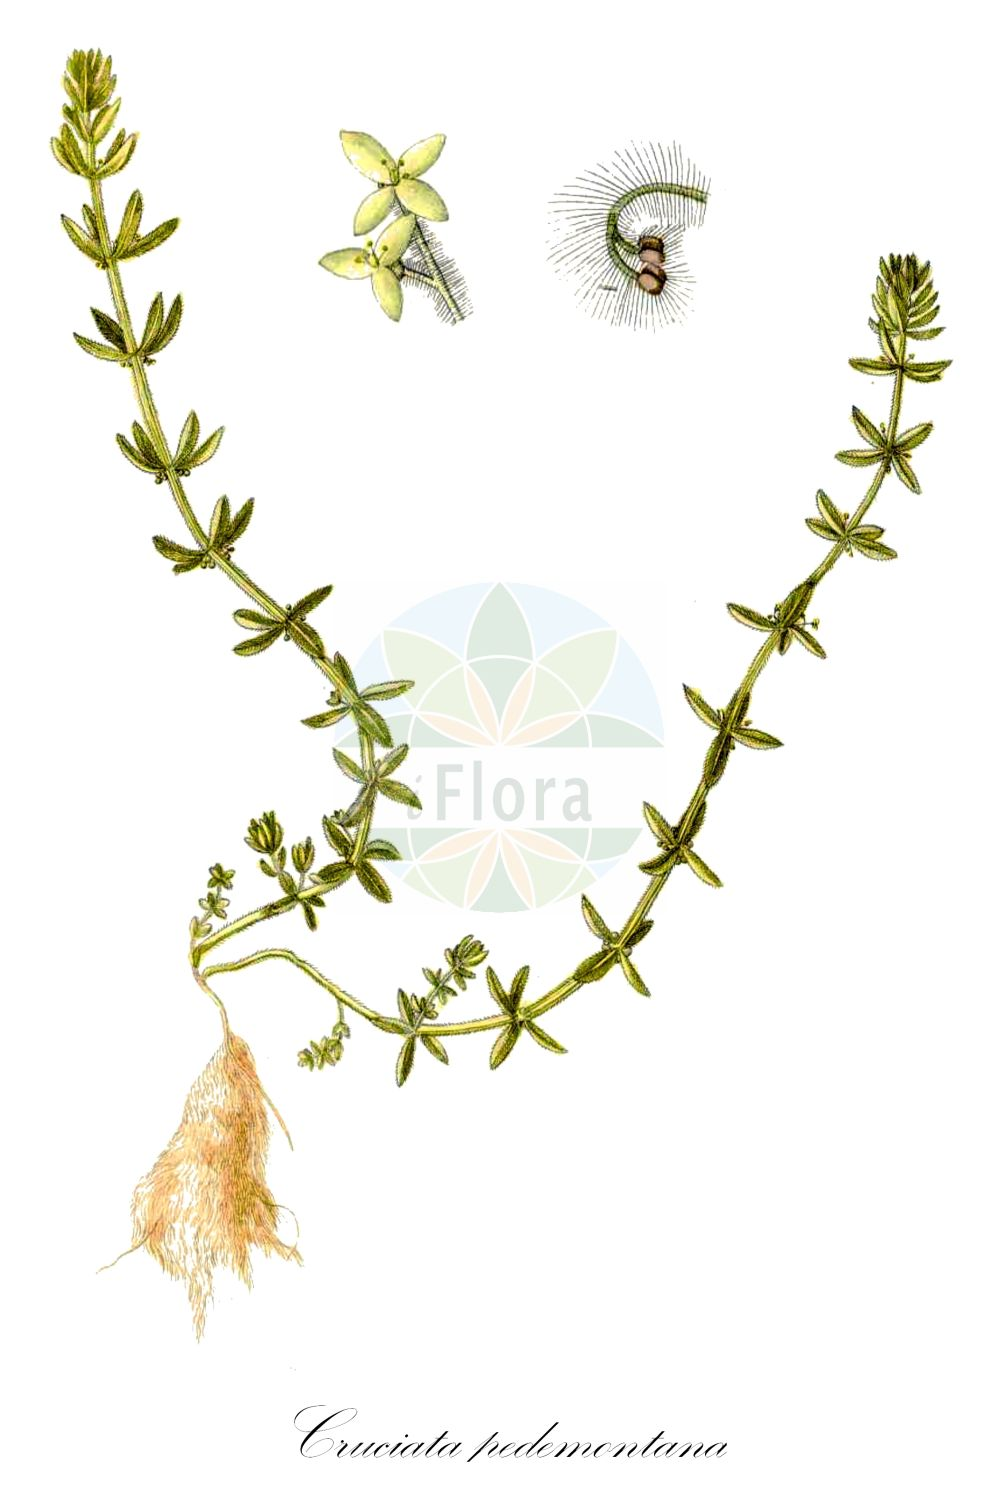 Historische Abbildung von Cruciata pedemontana. Das Bild zeigt Blatt, Bluete, Frucht und Same. ---- Historical Drawing of Cruciata pedemontana.The image is showing leaf, flower, fruit and seed.(Cruciata pedemontana,Galium pedemontanum,Galium pedemontanum (Bellardi) All.,Galium retrorsum,Valantia pedemontana,Cruciata,Kreuzlabkraut,Bedstraw,Rubiaceae,Roetegewaechse;Kaffeegewaechse;Krappgewaechse;Labkrautgewaechse,Bedstraw family,Blatt,Bluete,Frucht,Same,leaf,flower,fruit,seed,Waldstein-Wartenberg & Kitaibel (1799-1812))